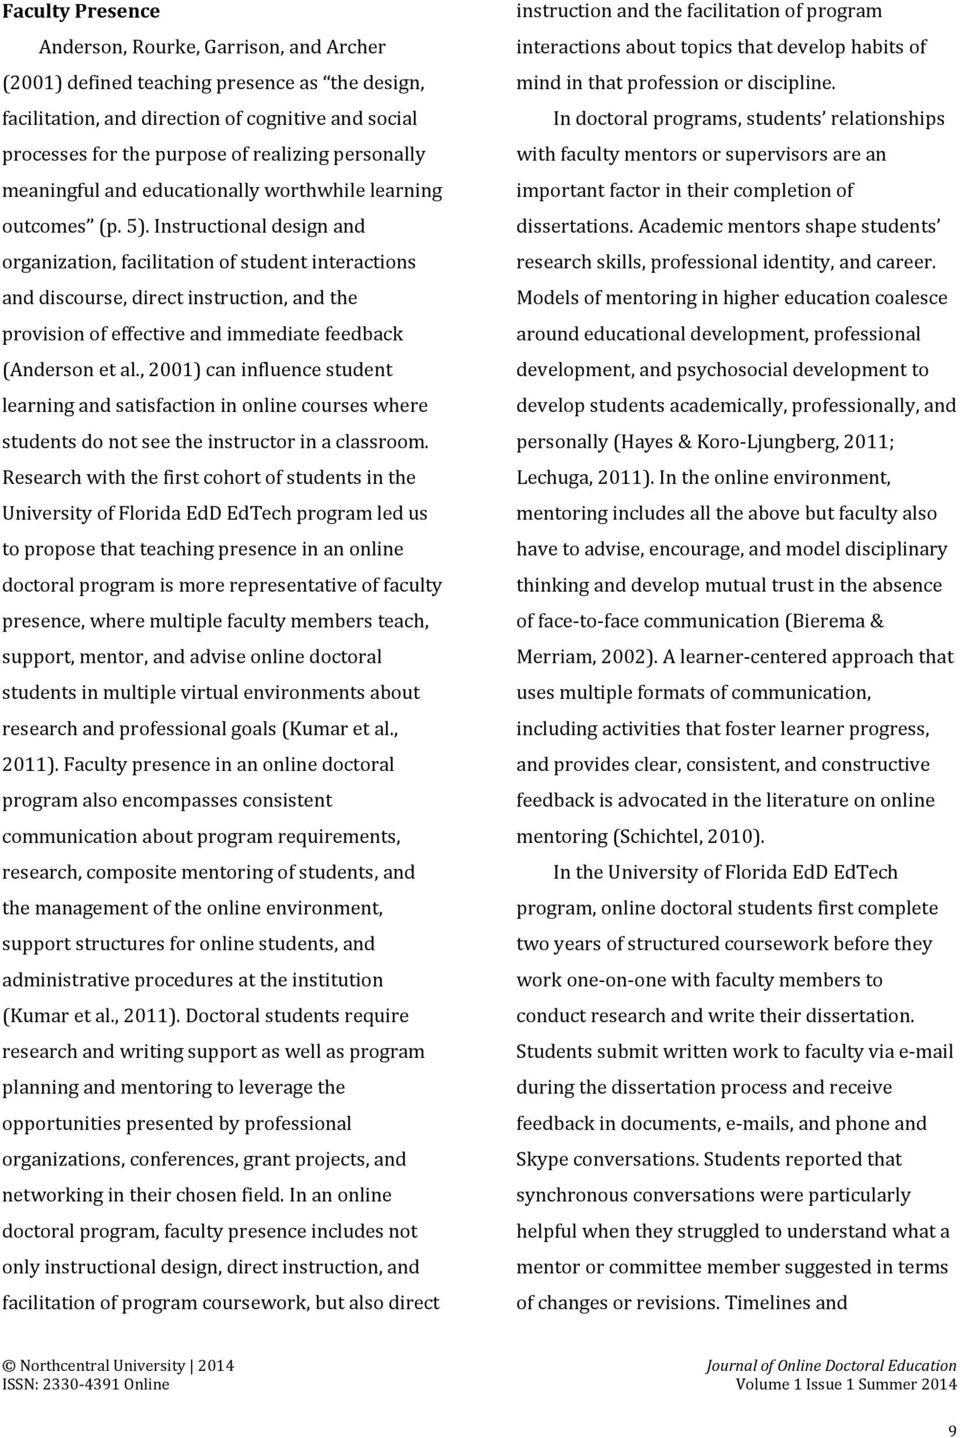 Instructional design and organization, facilitation of student interactions and discourse, direct instruction, and the provision of effective and immediate feedback (Anderson et al.